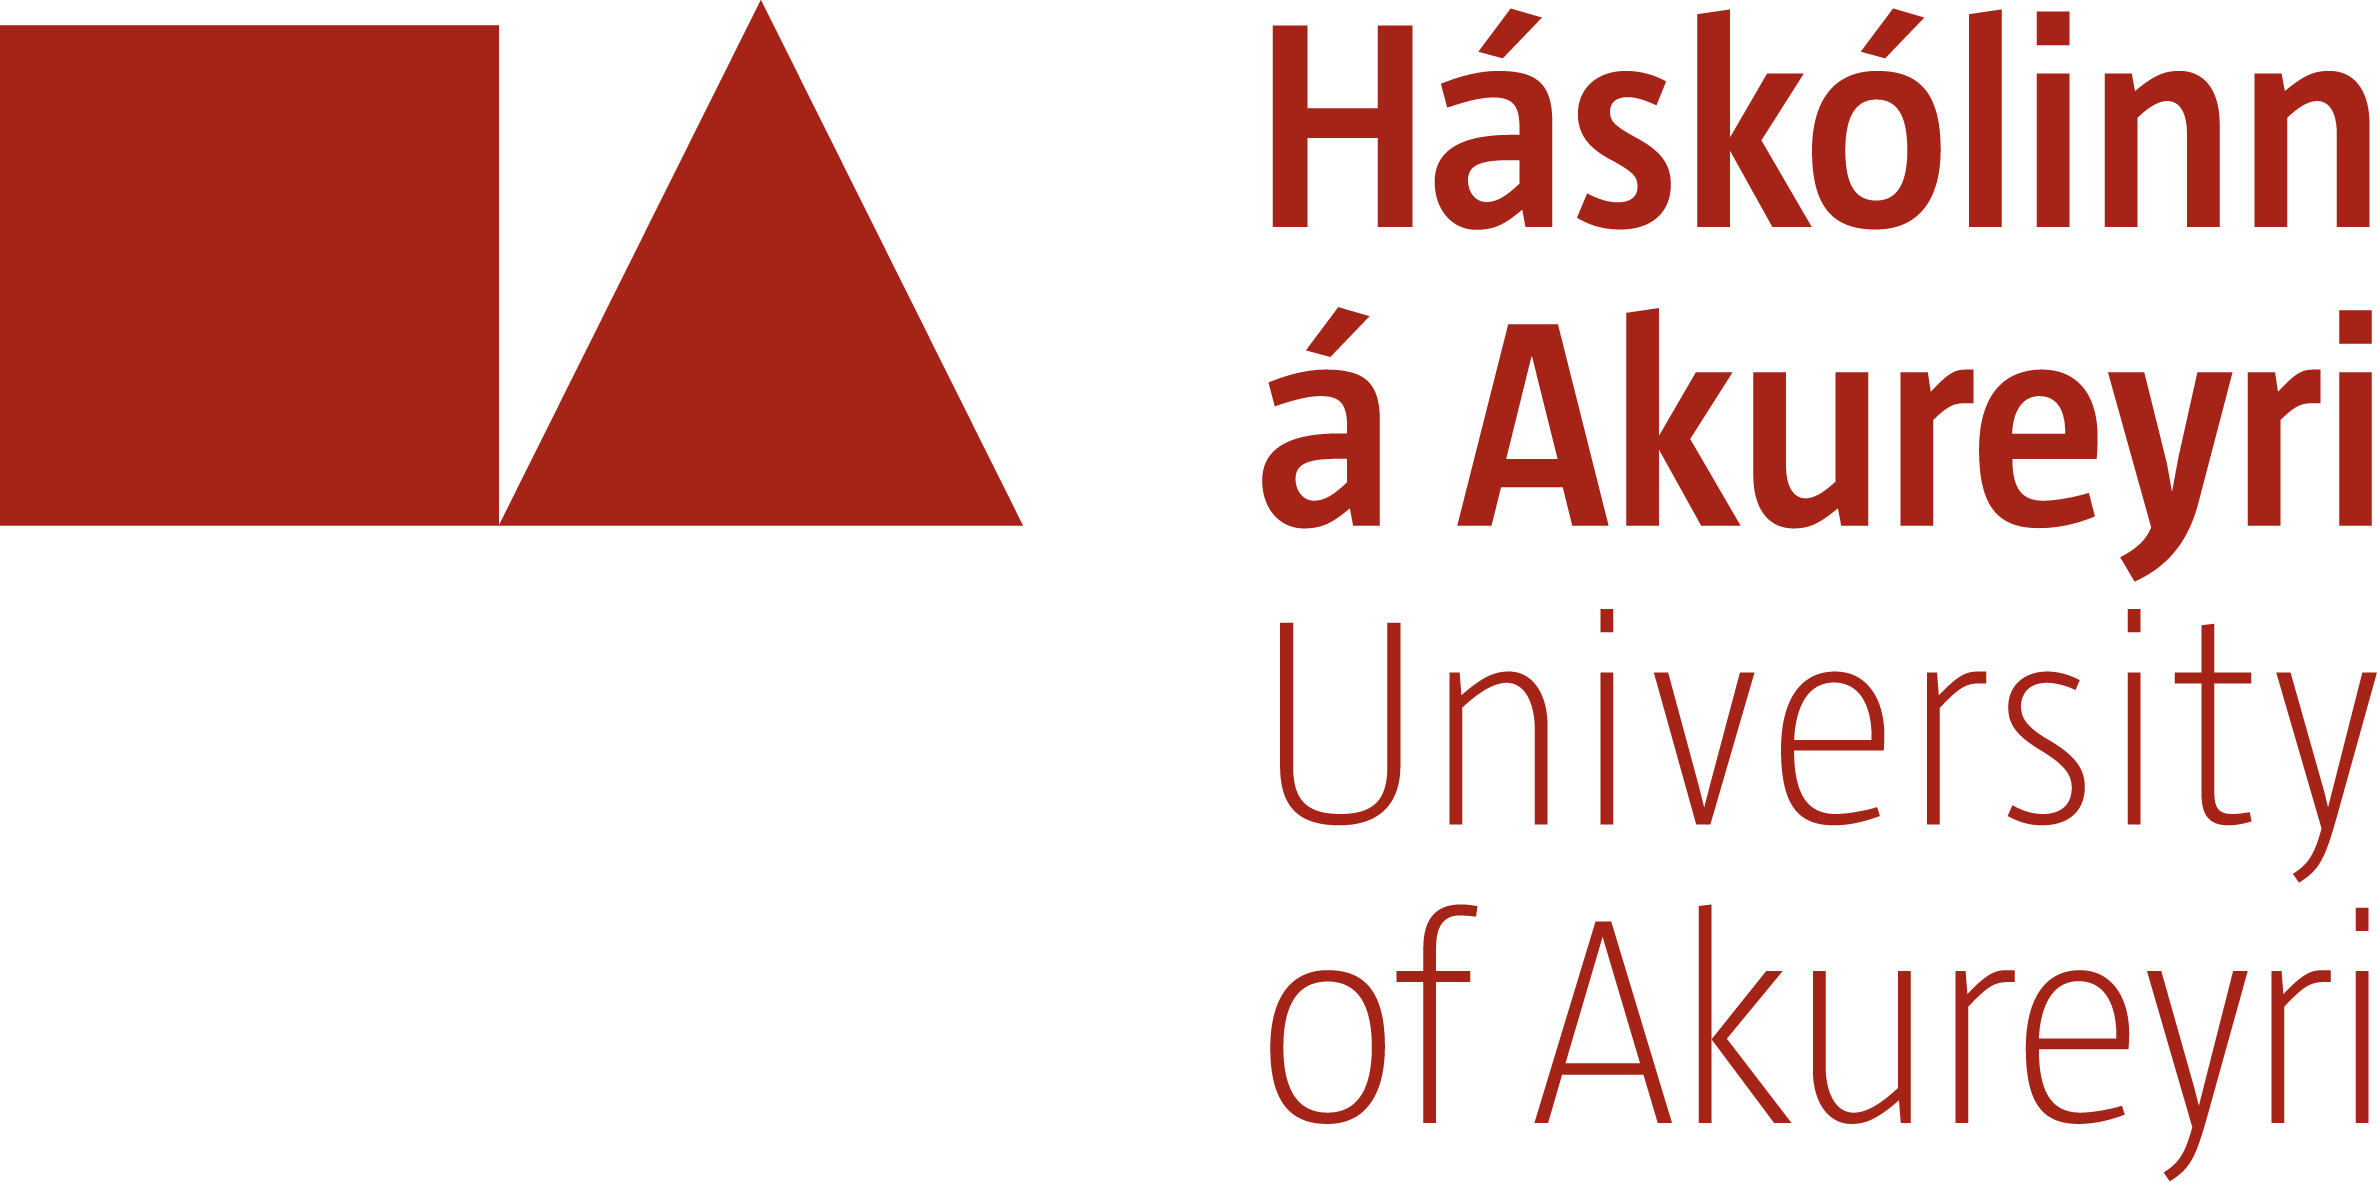 University of Akureyri